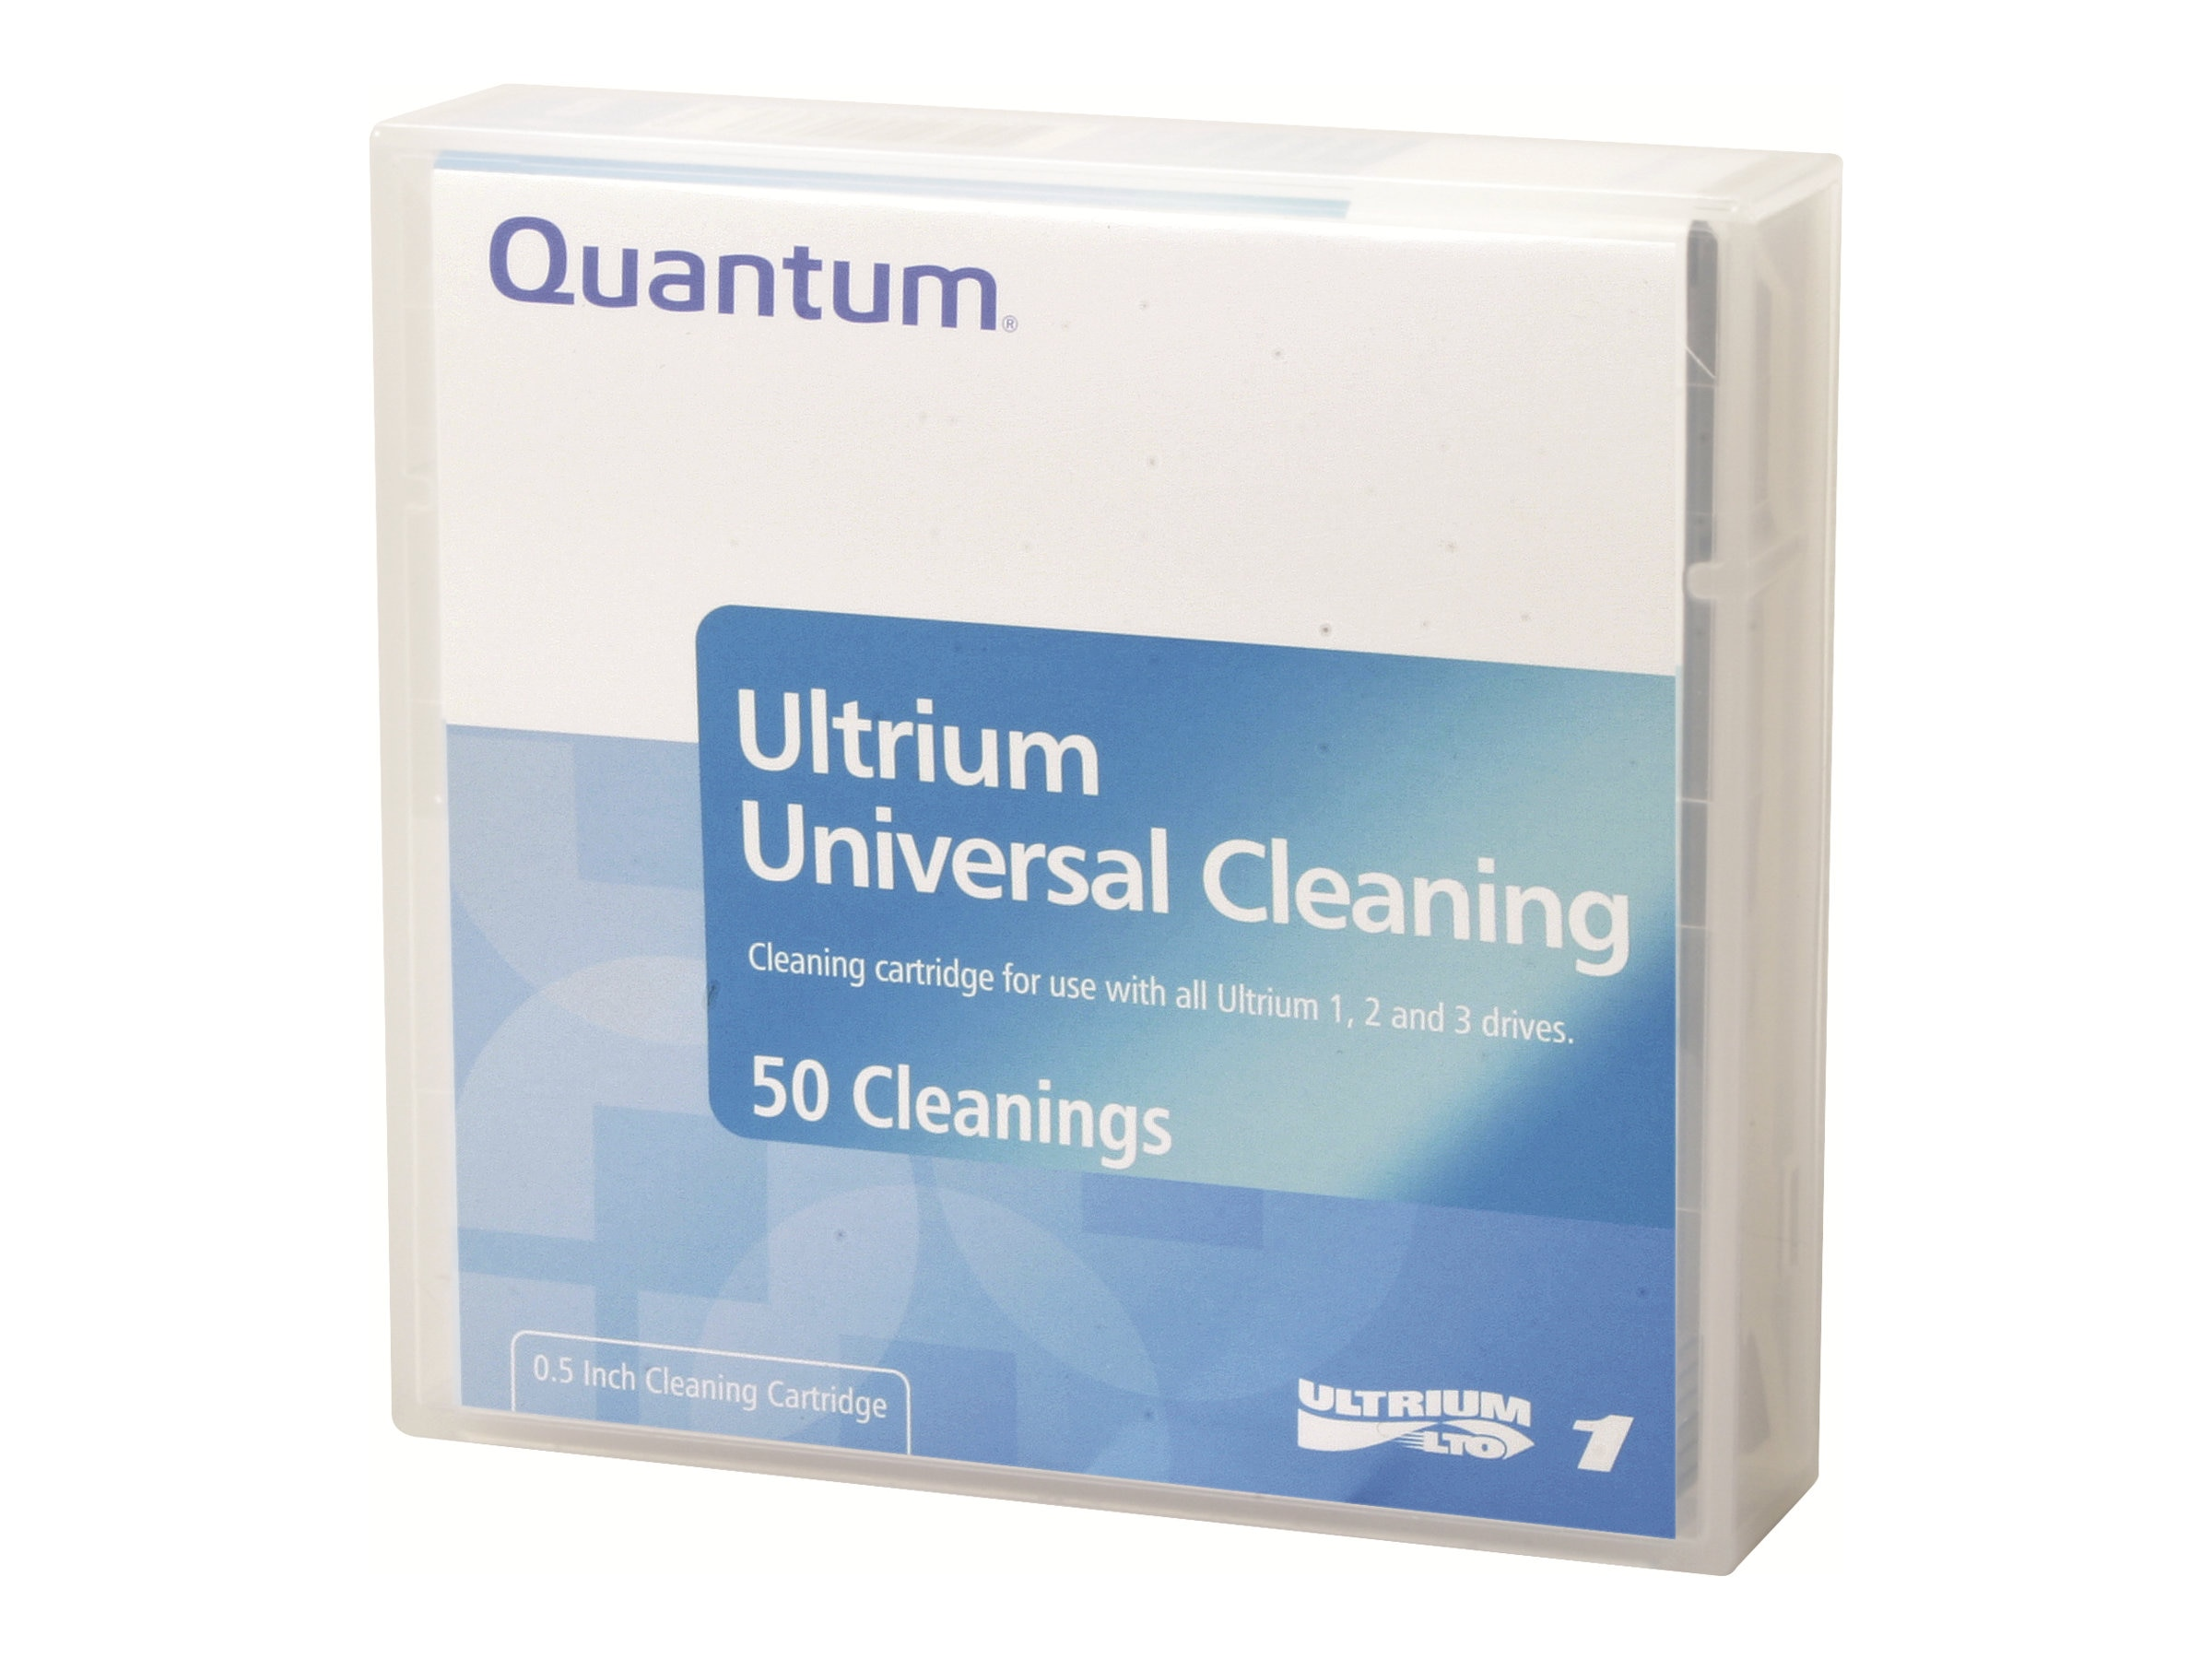 Quantum LTO Universal Cleaning Cartridge, MR-LUCQN-01